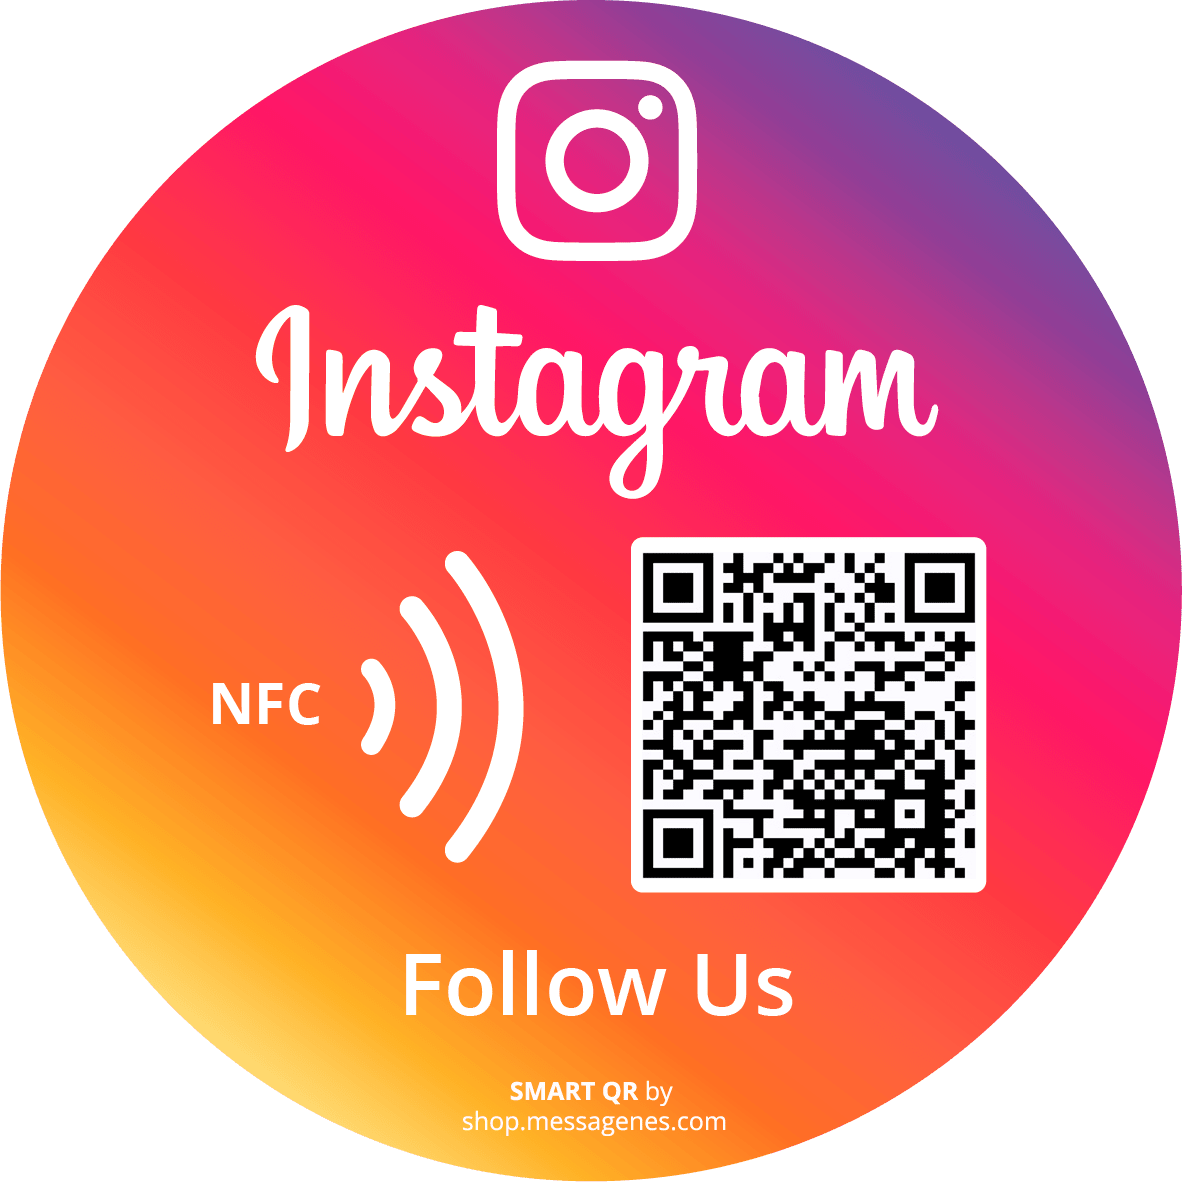 Follow us on Round Instagram sticker with QR & NFC